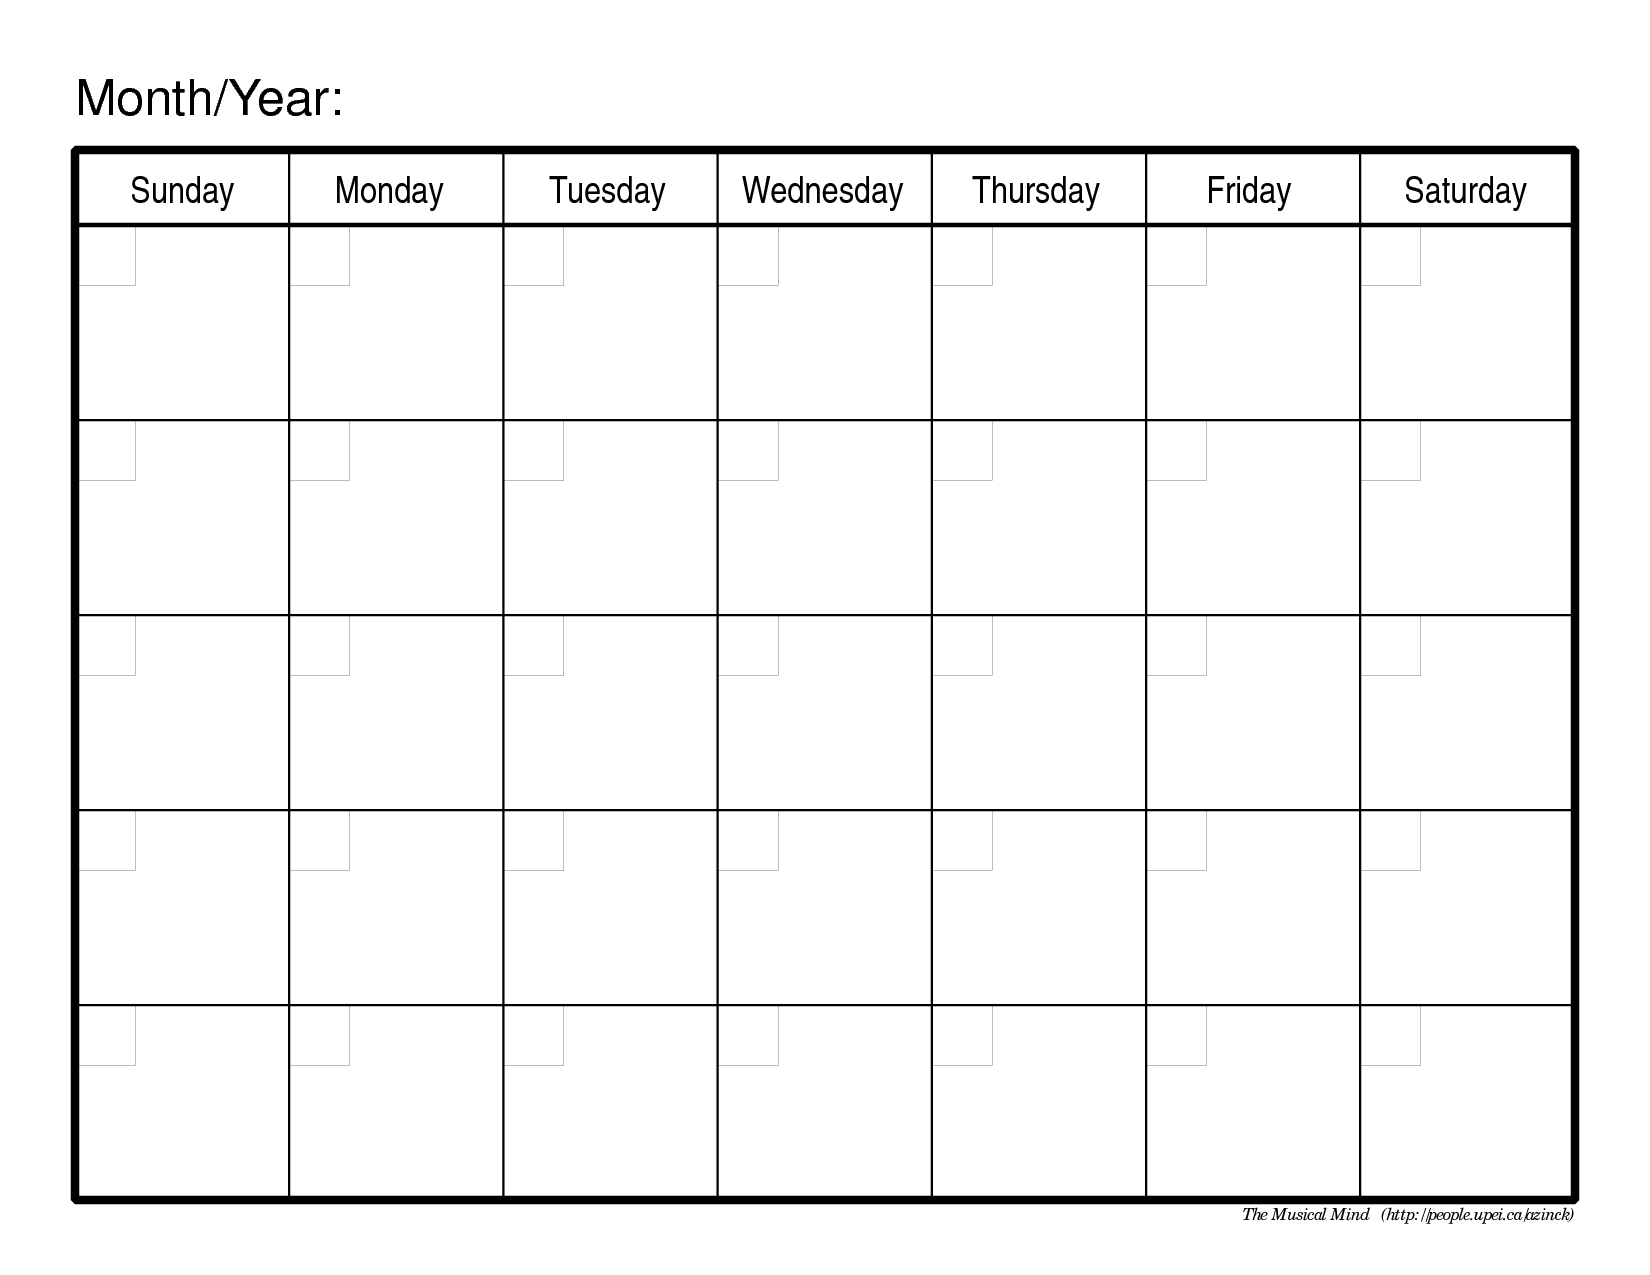 Monthly Calendar Template | Free Printable Calendar  Blank Calendar Template With Lines